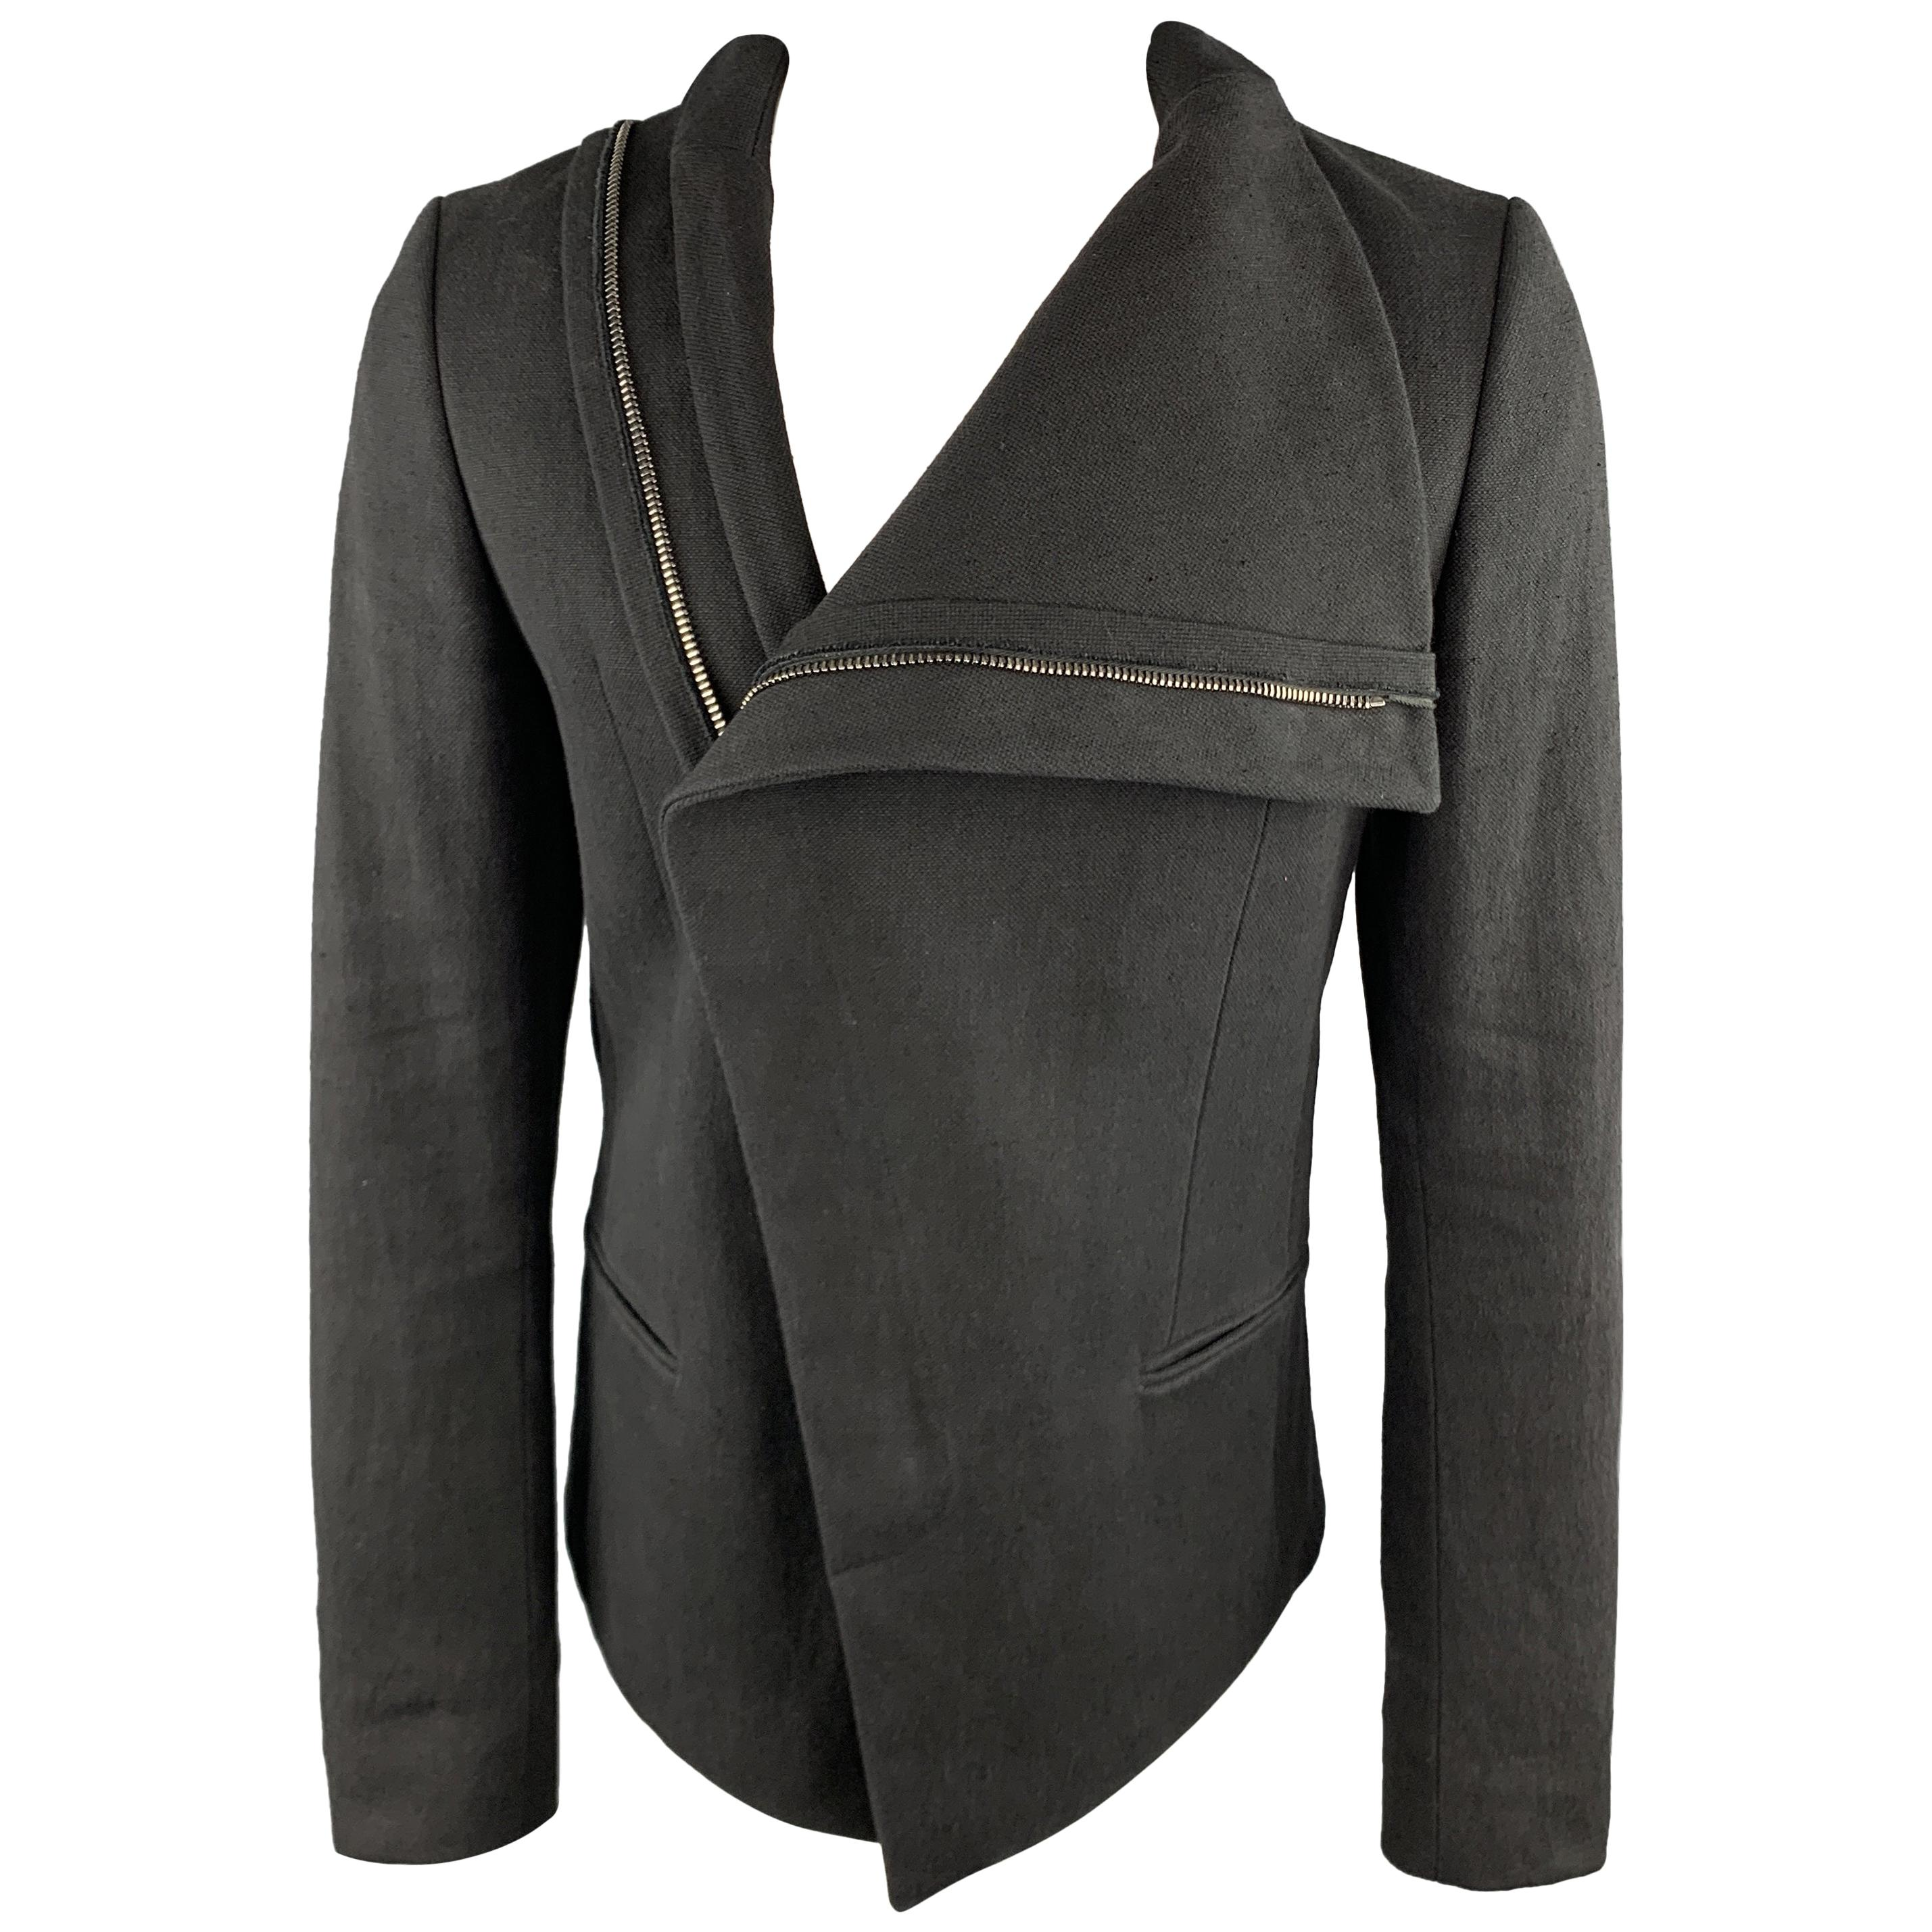 8f0f155d0 Zip Jackets - 721 For Sale on 1stdibs